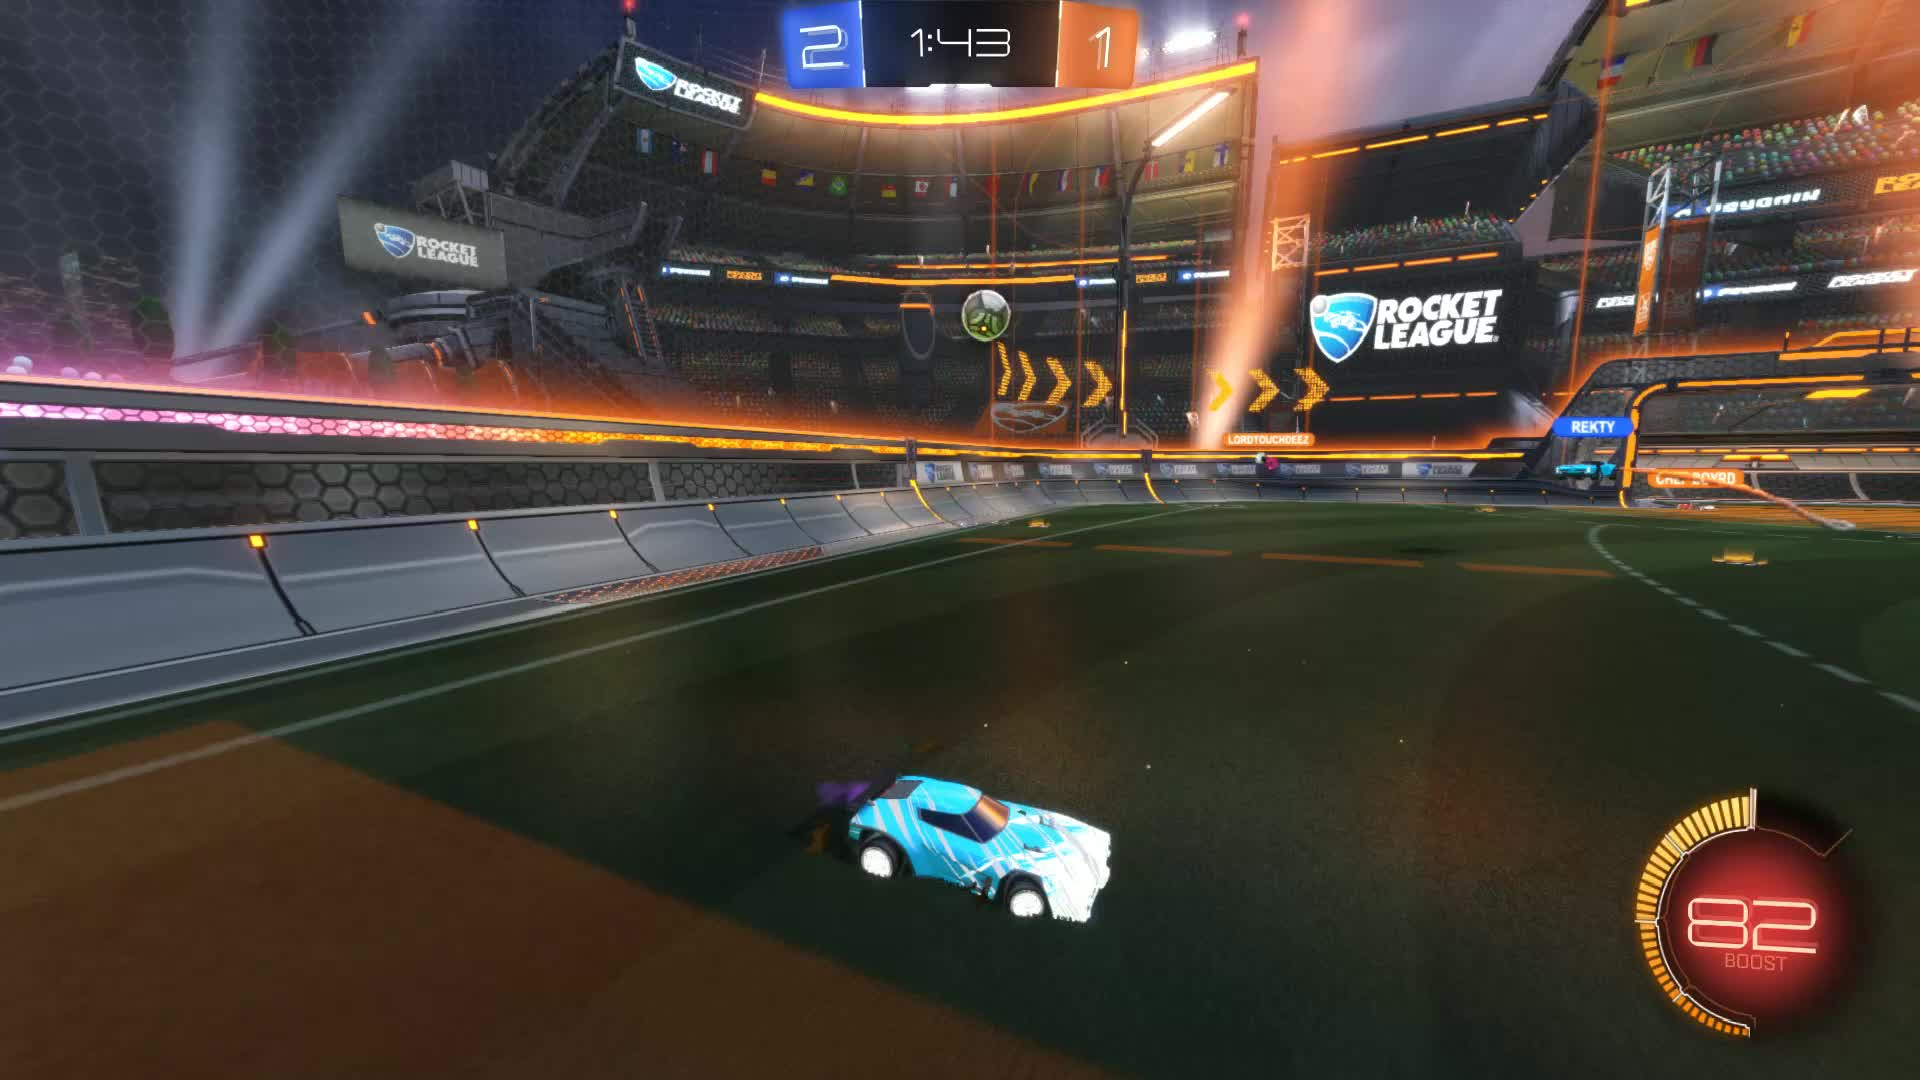 Gif Your Game, GifYourGame, Goal, Rocket League, RocketLeague, nrp., meh double GIFs